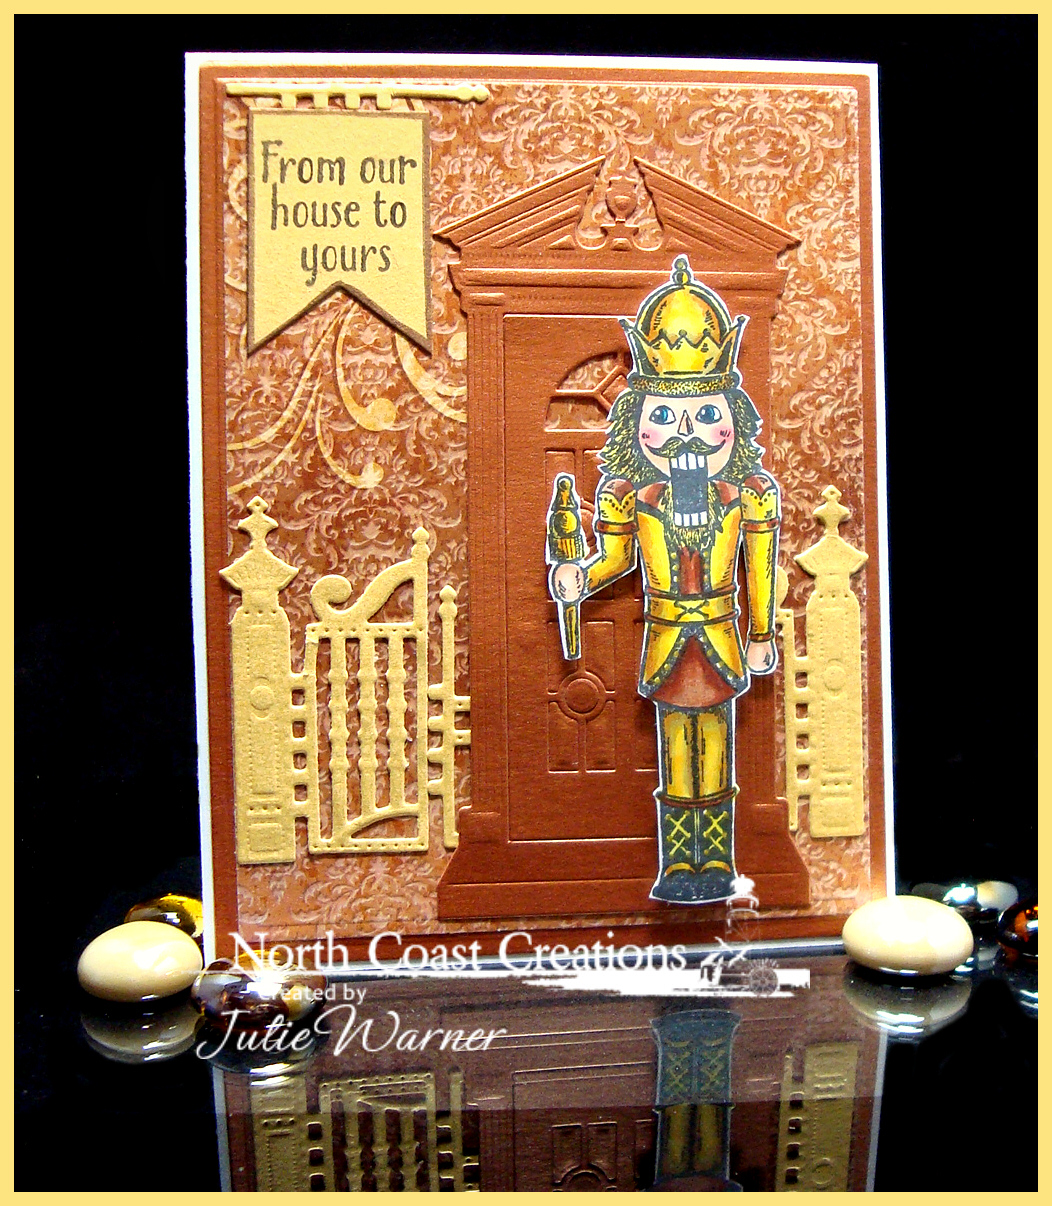 Stamps - North Coast Creations Nutcracker, Sweet Christmas Wishes, Our Daily Bread Designs Winter Paper Collection 2014, ODBD Custom Gilded Gate Die, ODBD Custom Pennant Dies